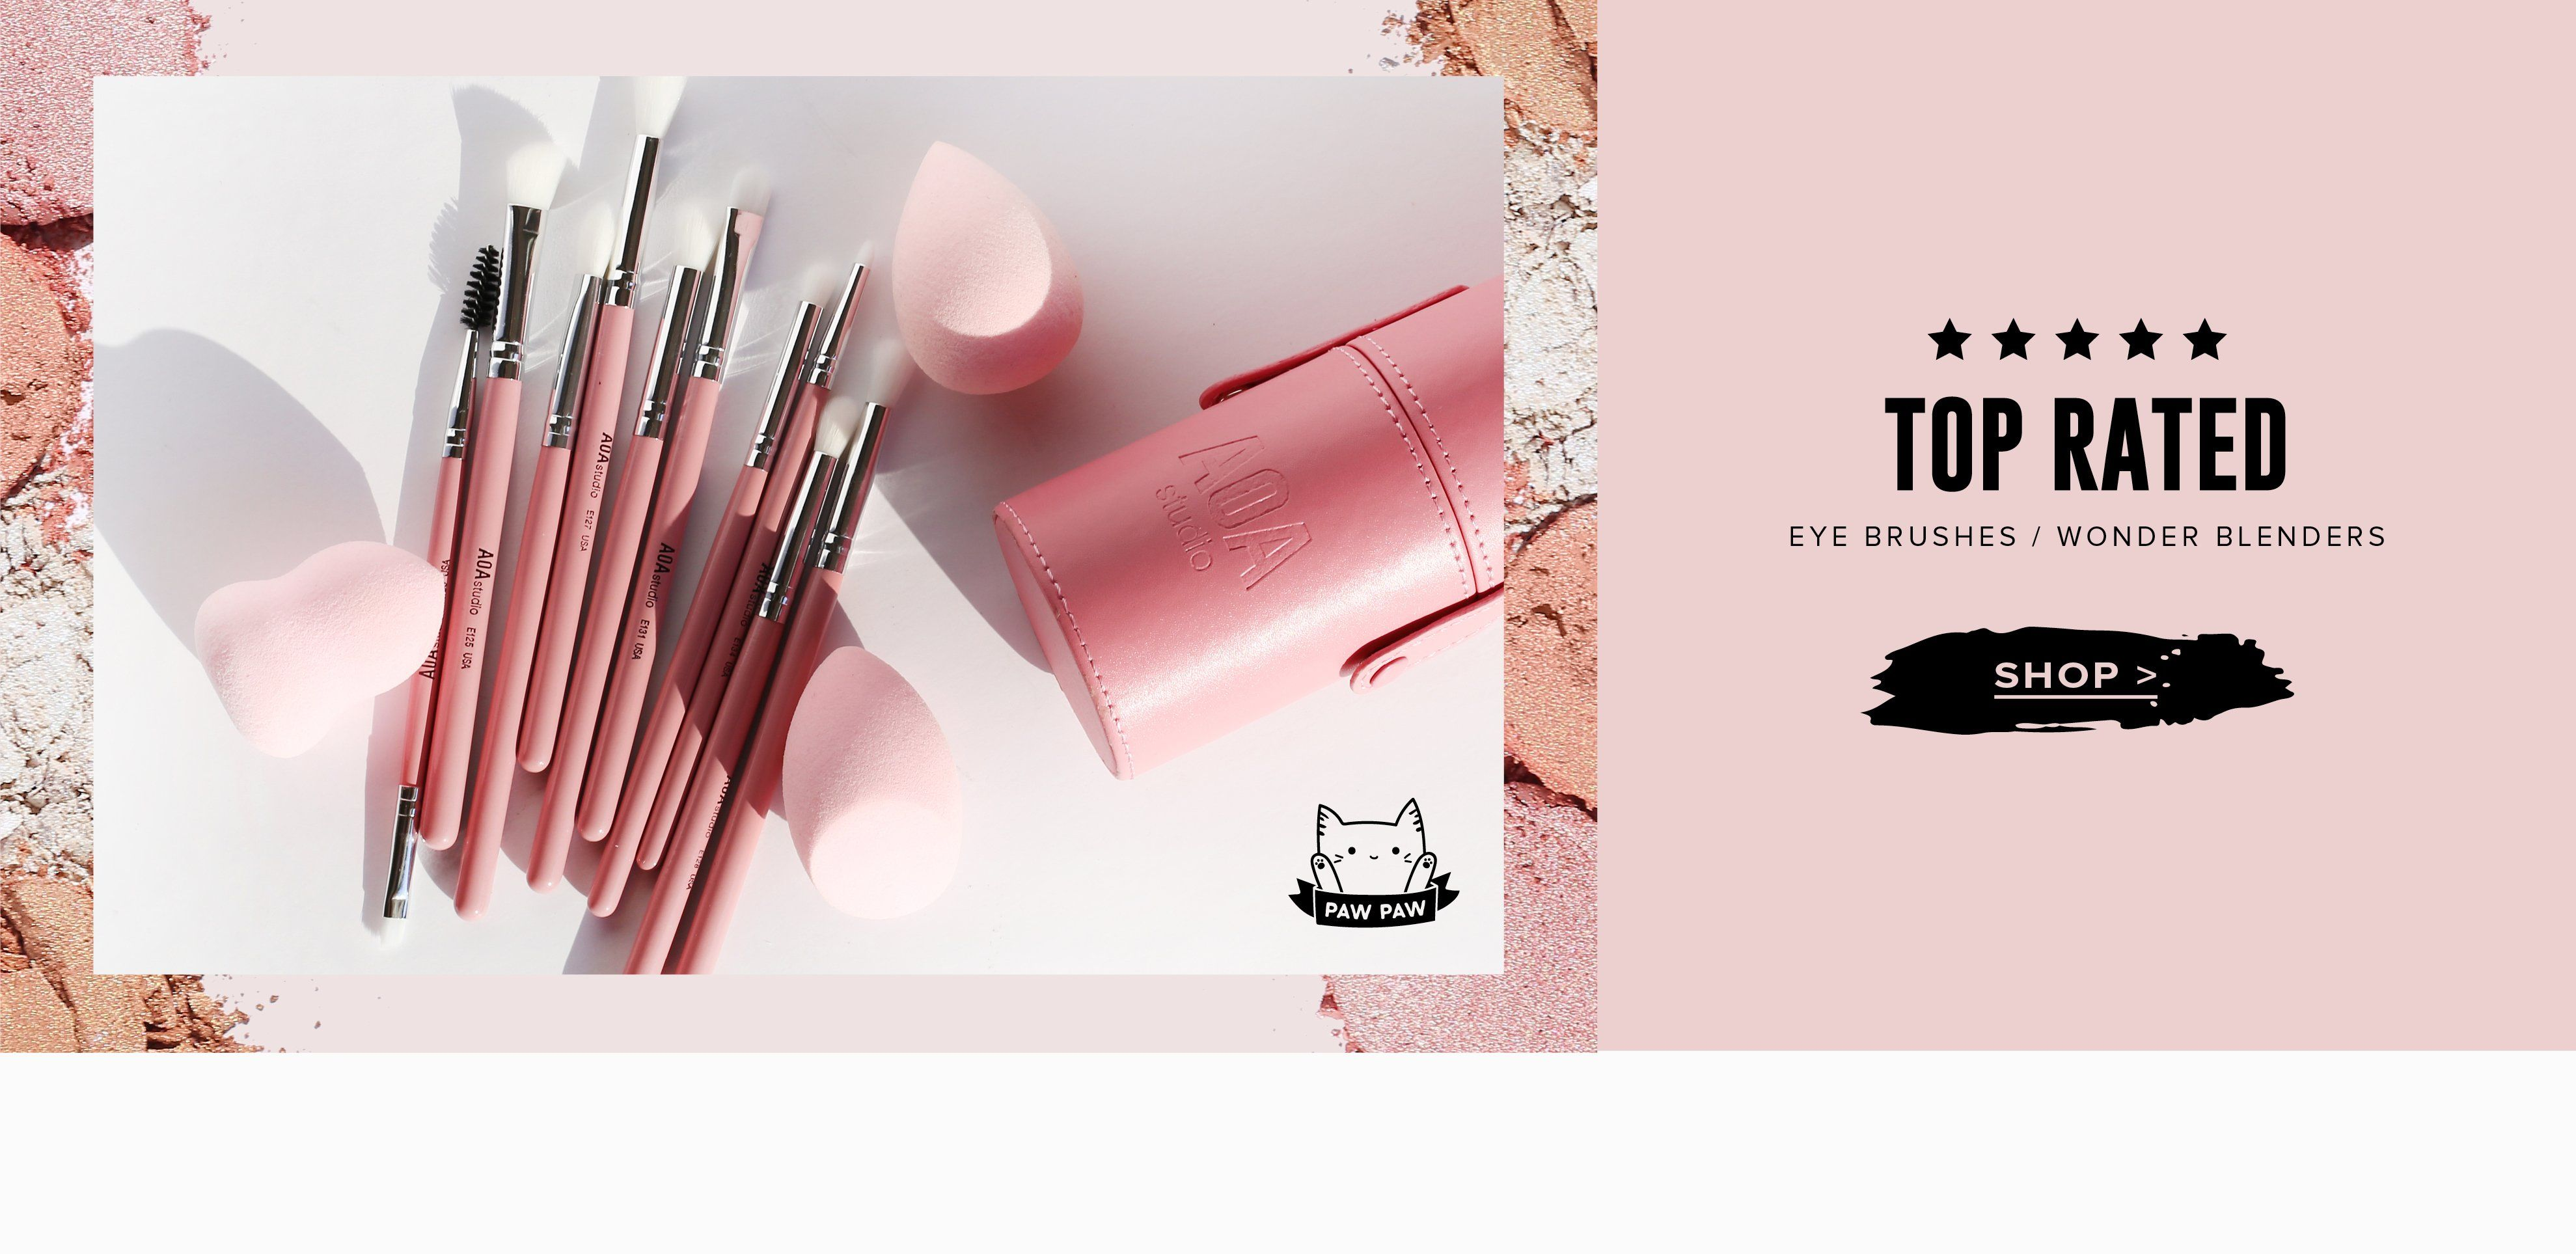 Only 1 Dollar Makeup, Cosmetics and Beauty Online Shop